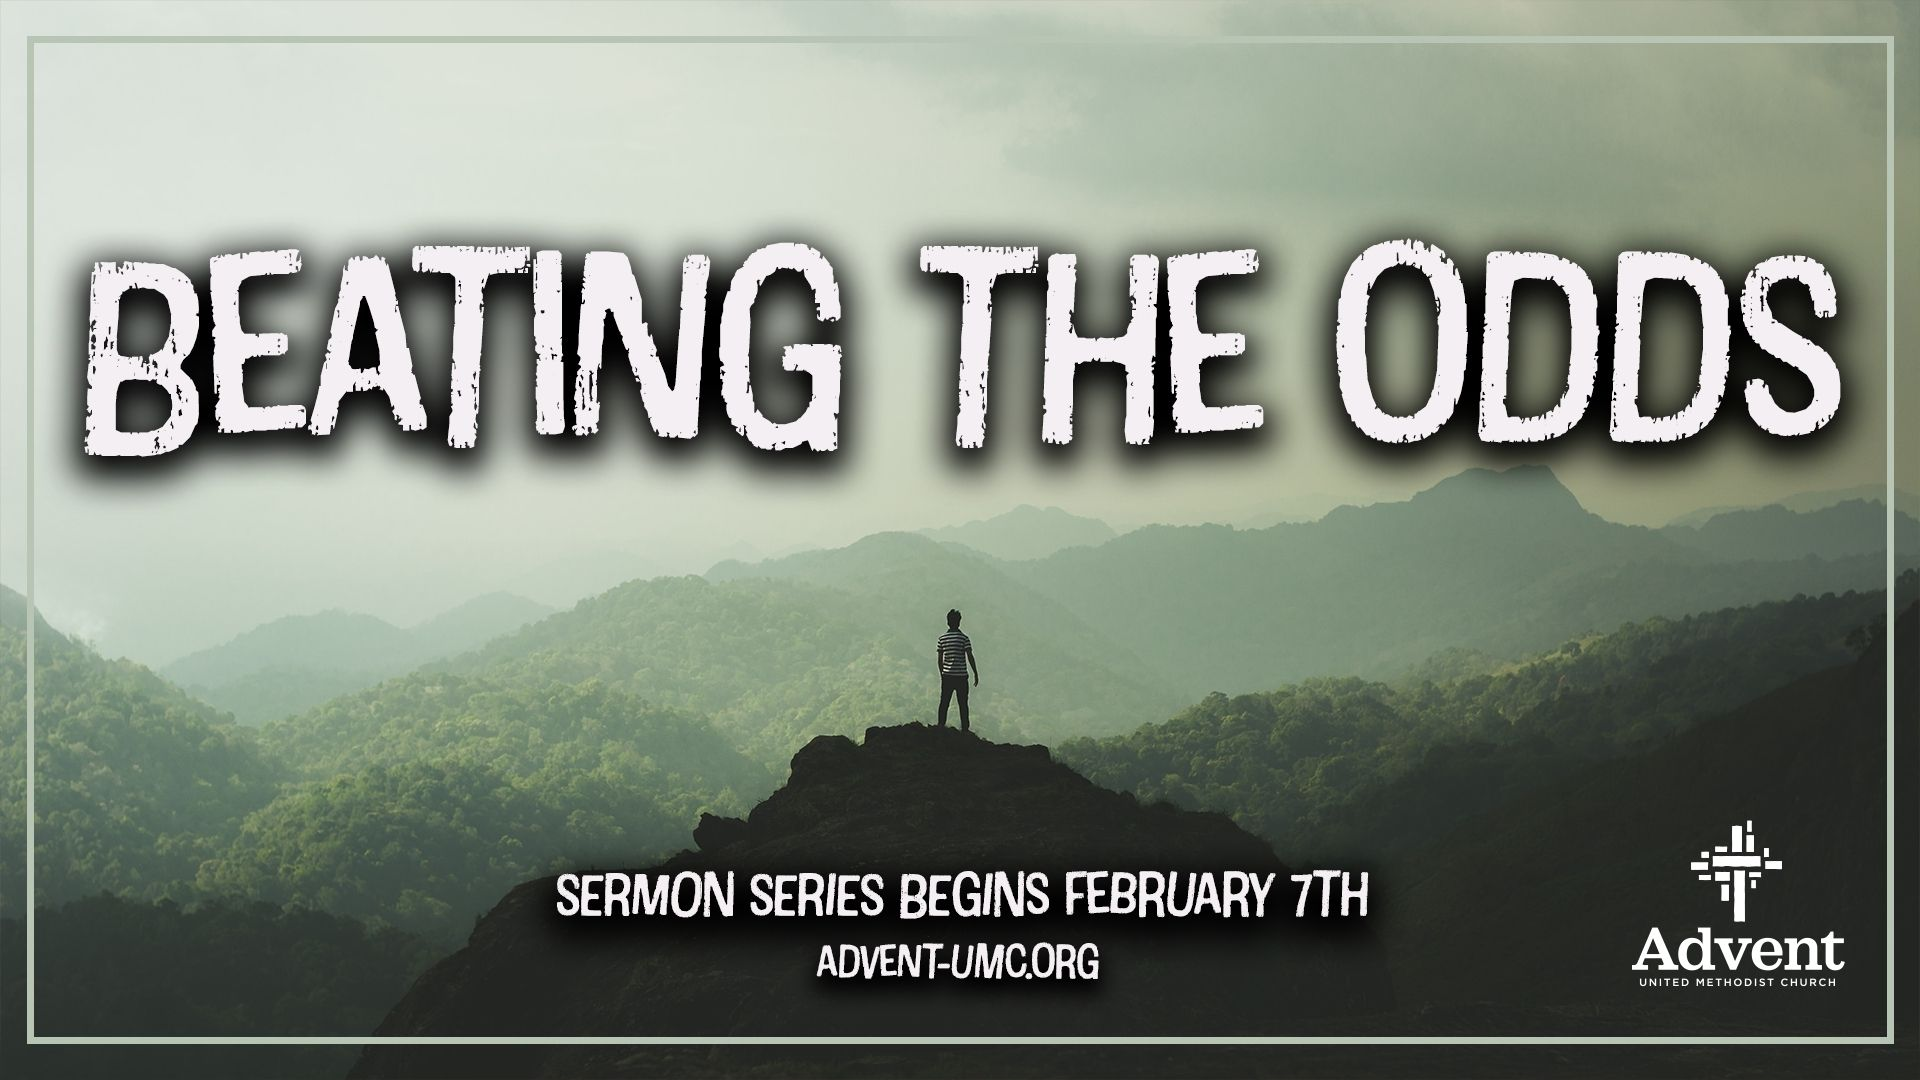 Beating the Odds - Man standing amongst the mountains